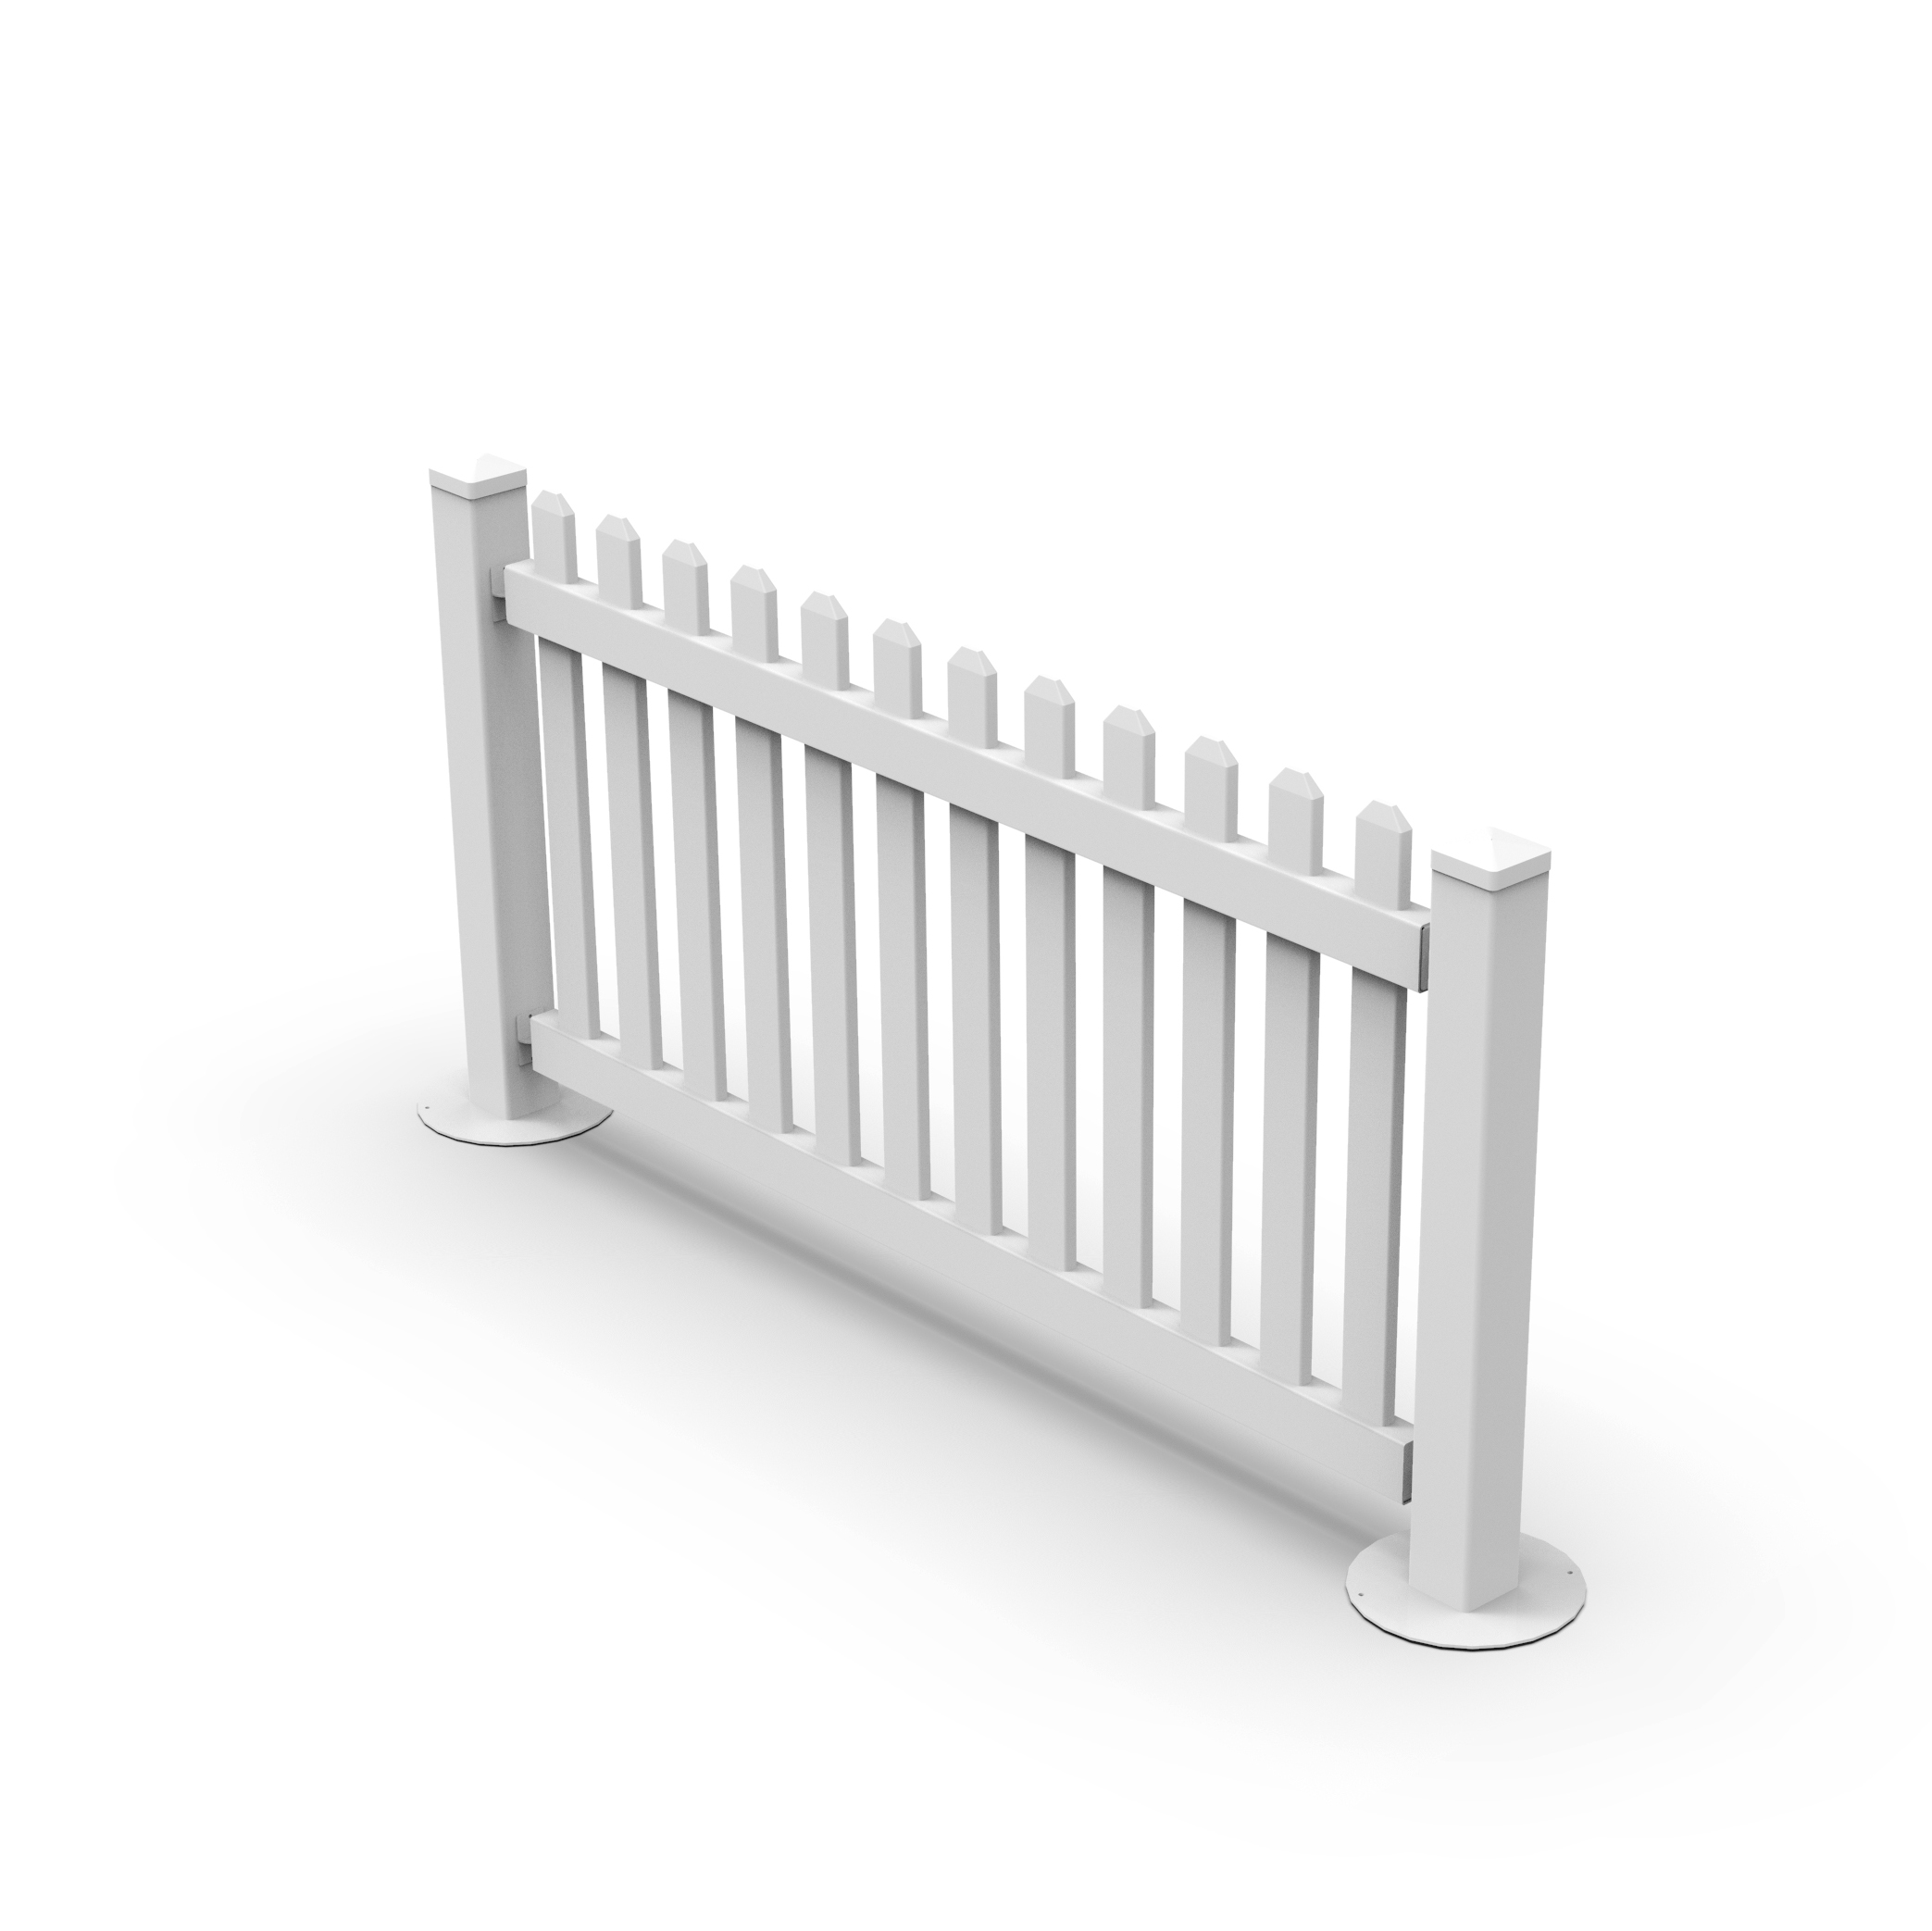 Fentech Easily Assembled Plastic Pvc Vinyl Temporary Fence With Metal Stand  Post Base Feet - Buy Temporary Fence,Temporary Fence Base,Pvc Temporary